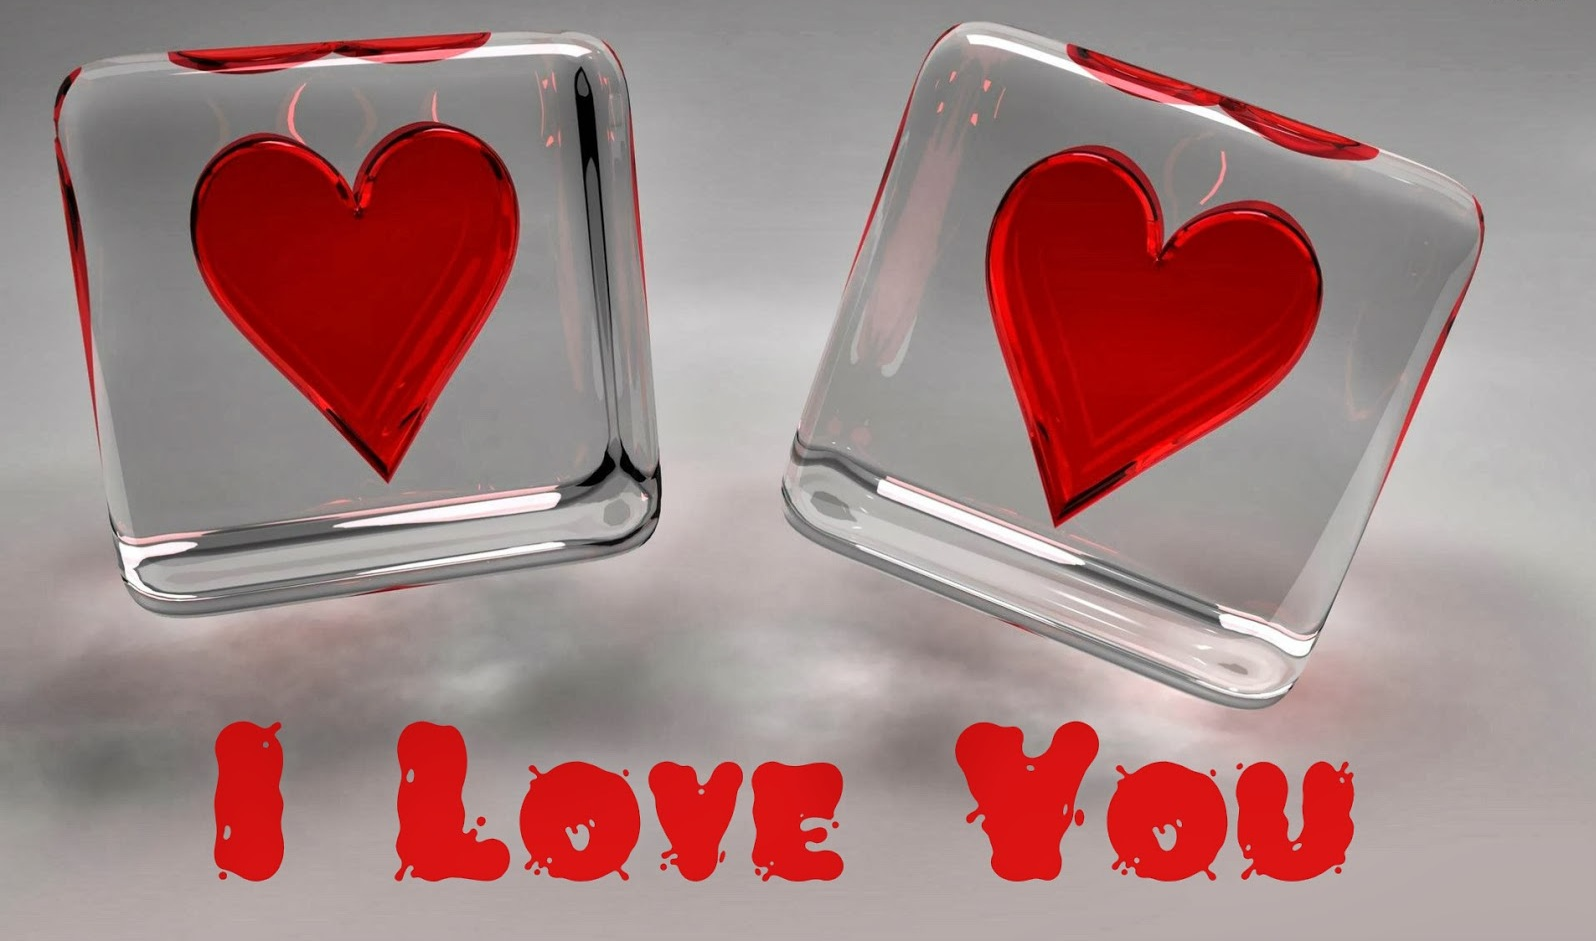 L Love U Hd Wallpaper : I Love You Wallpapers, Pictures, Images